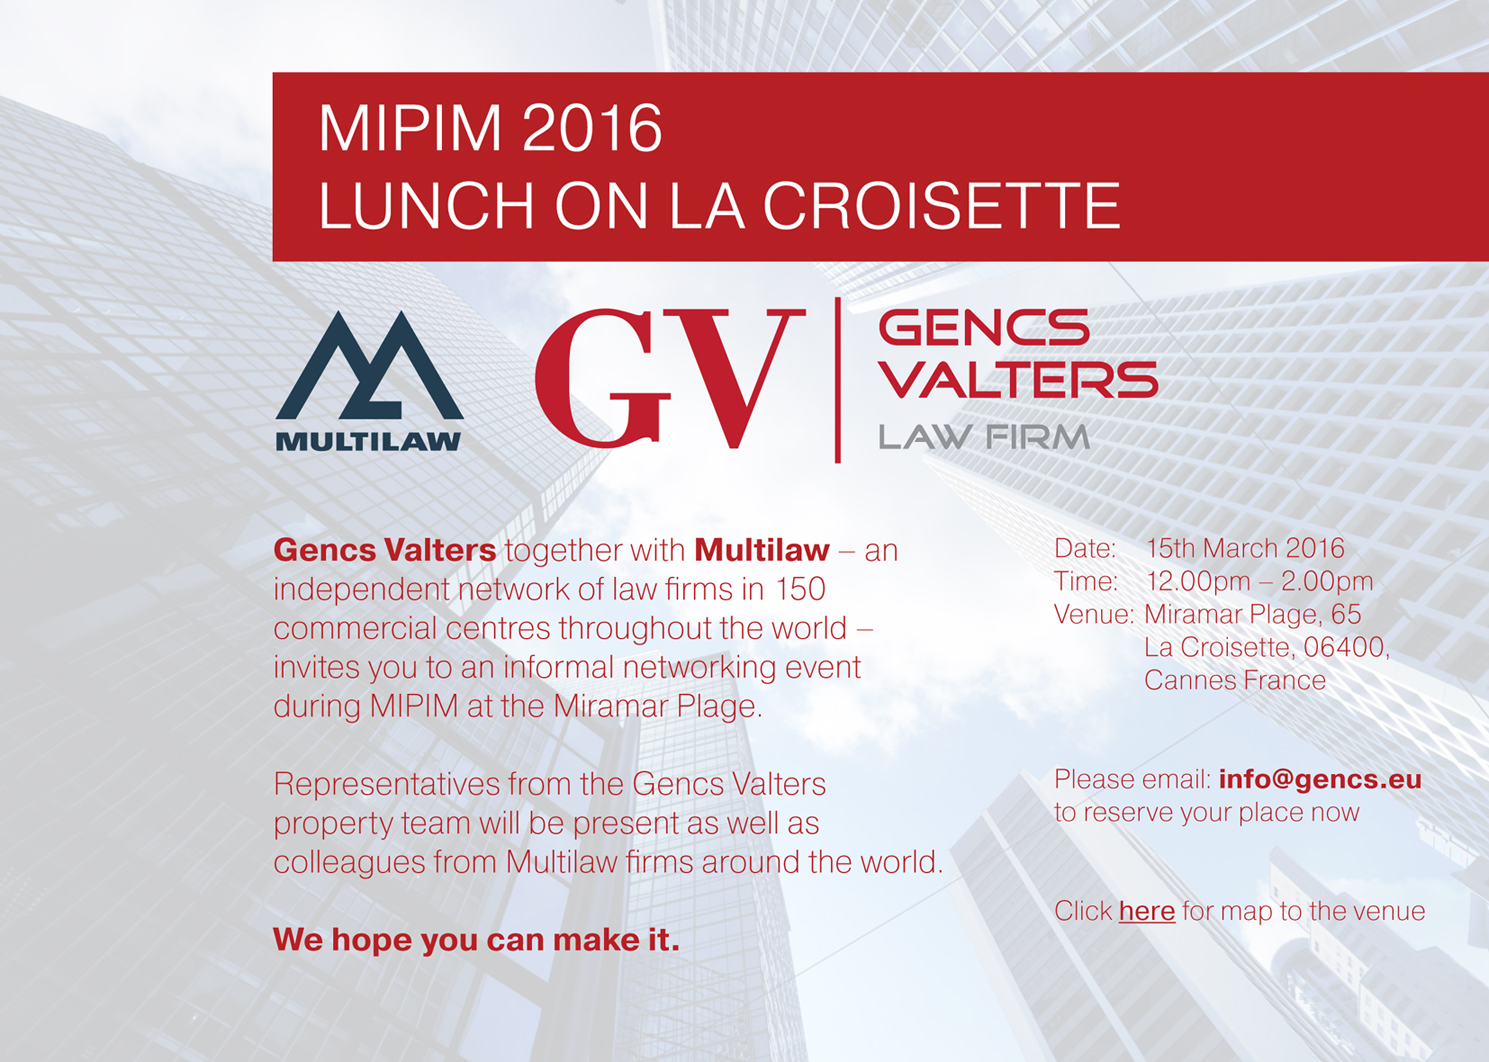 MIPIM invitation, Gencs Valters law firm, lawyer in Latvia